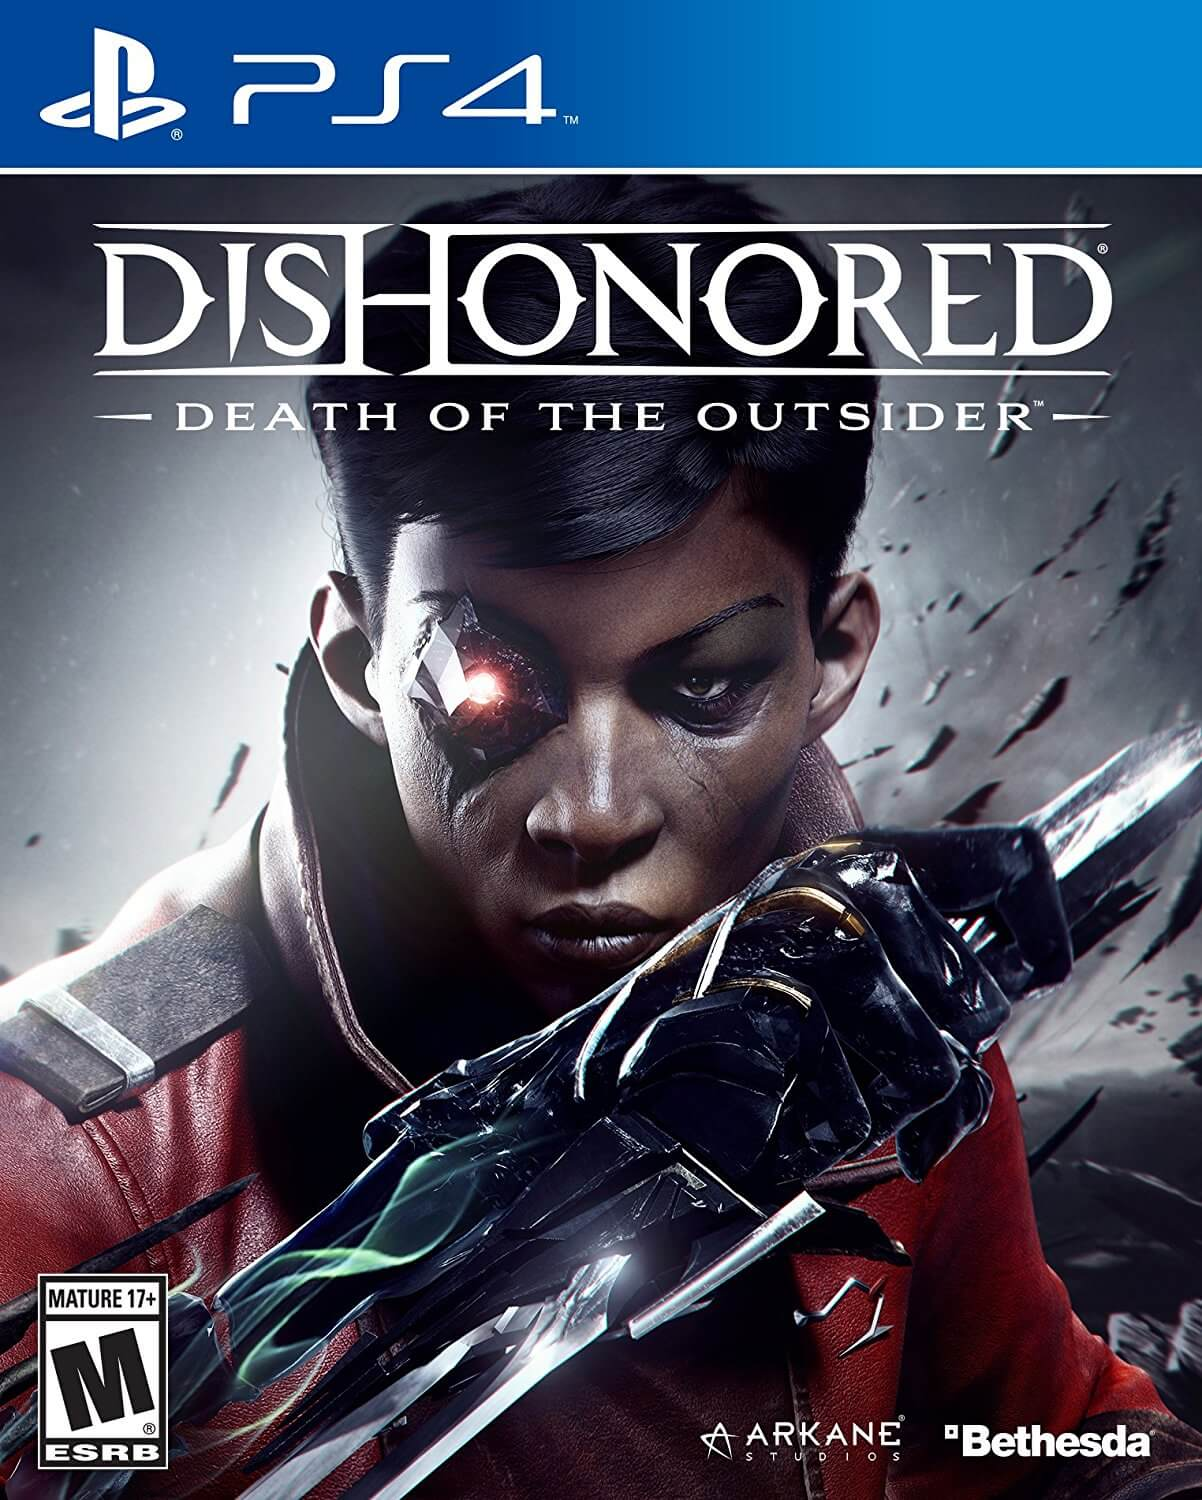 Dishonored Death of the Outsider 1 - Kill a God in New Dishonored: Death of the Outsider Trailer